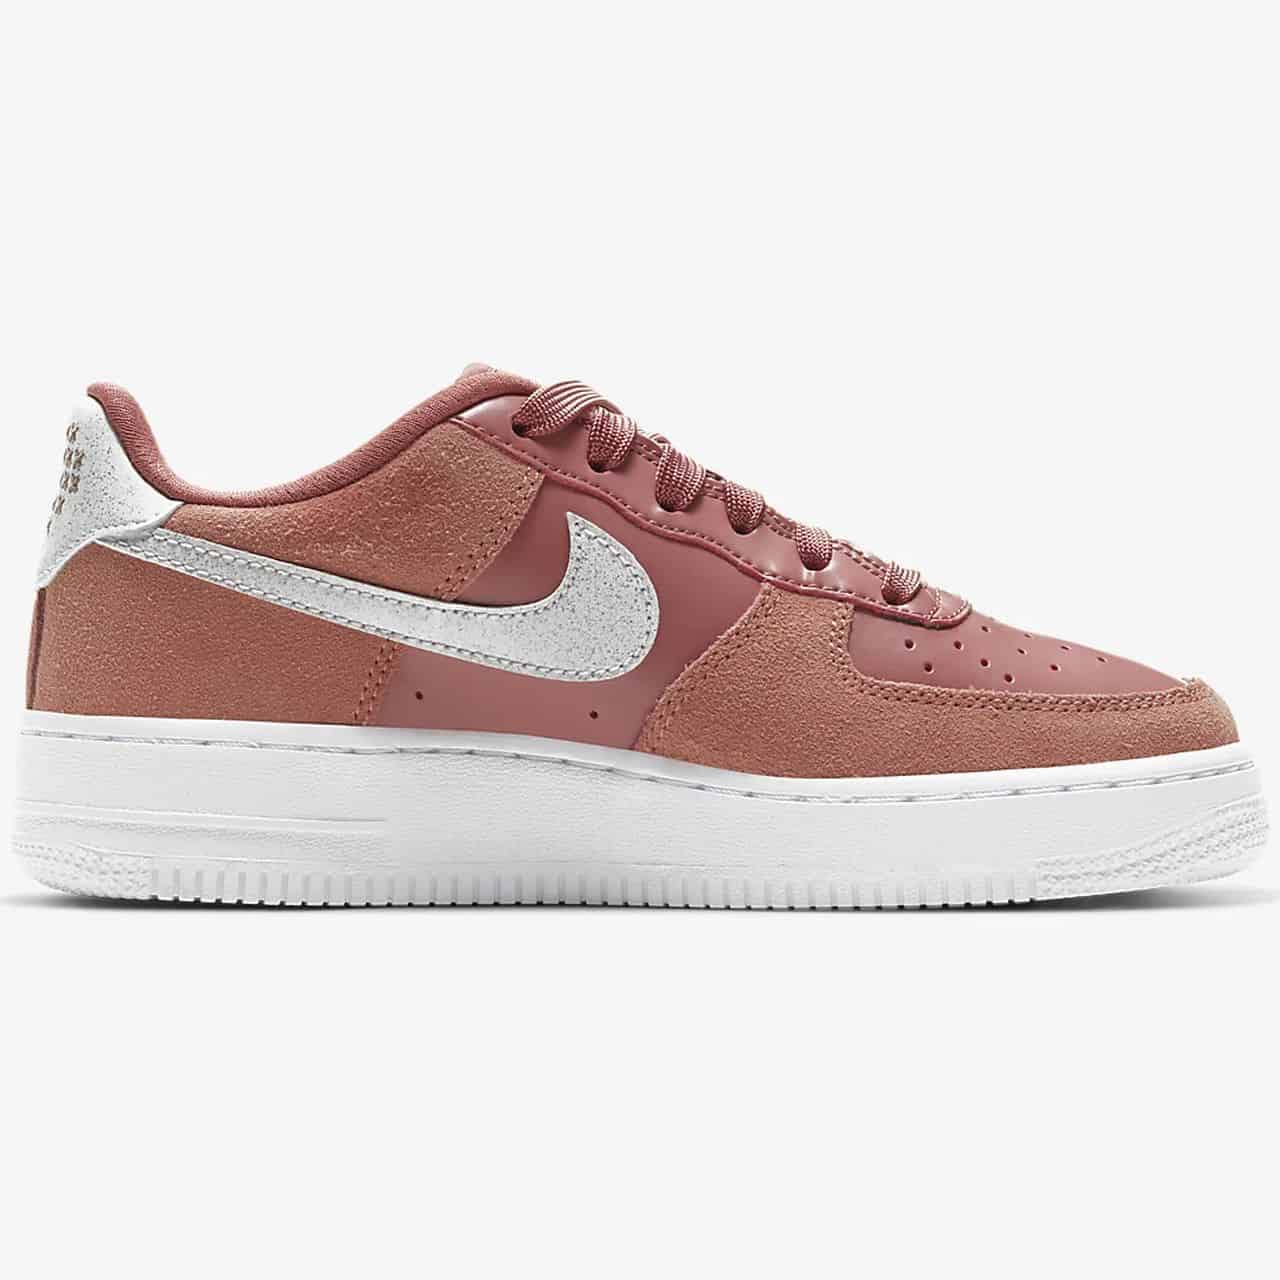 ADIDASI NIKE AIR FORCE 1 LV8 V DAY (F) - CD7407 600 2